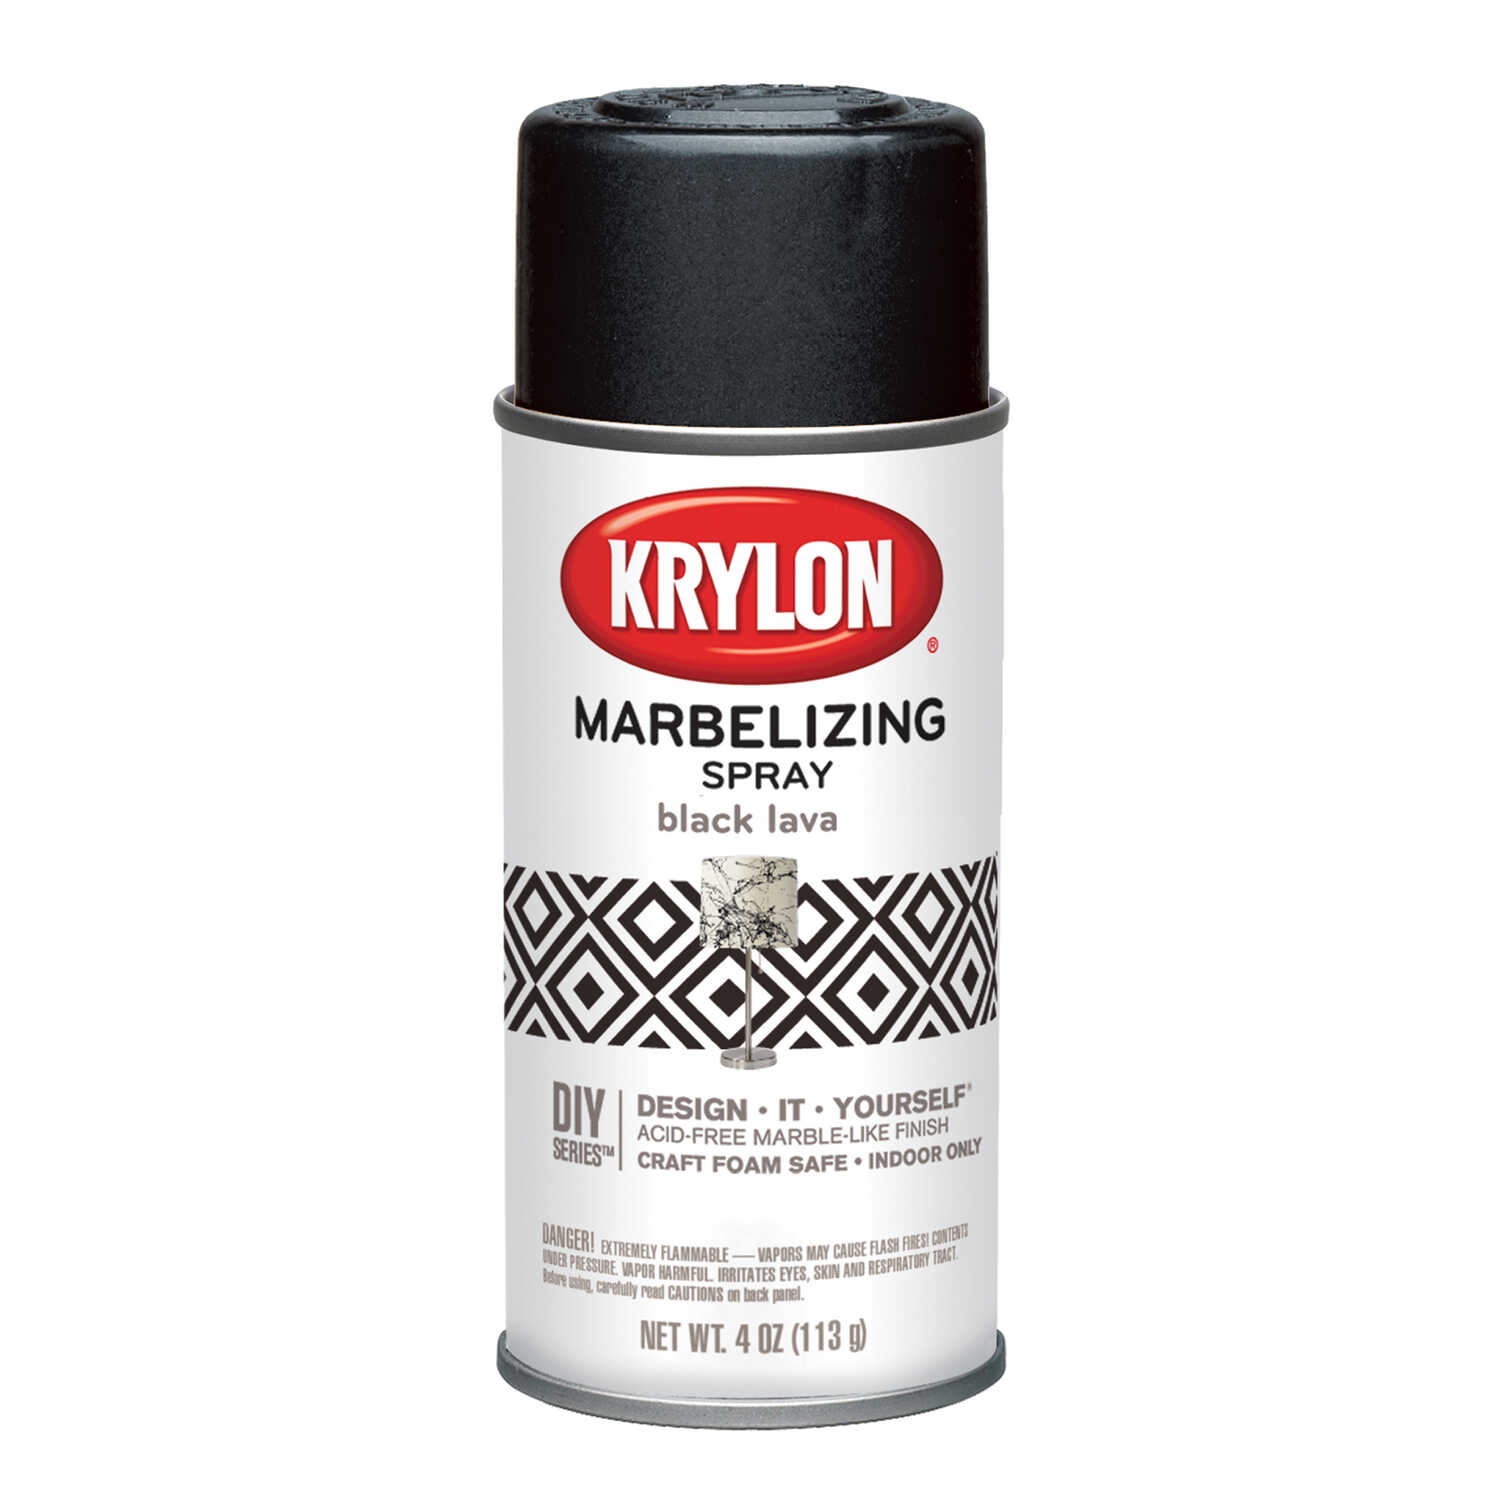 Krylon  Marbelizing  Textured  Black Lava  Spray Paint  4 oz.